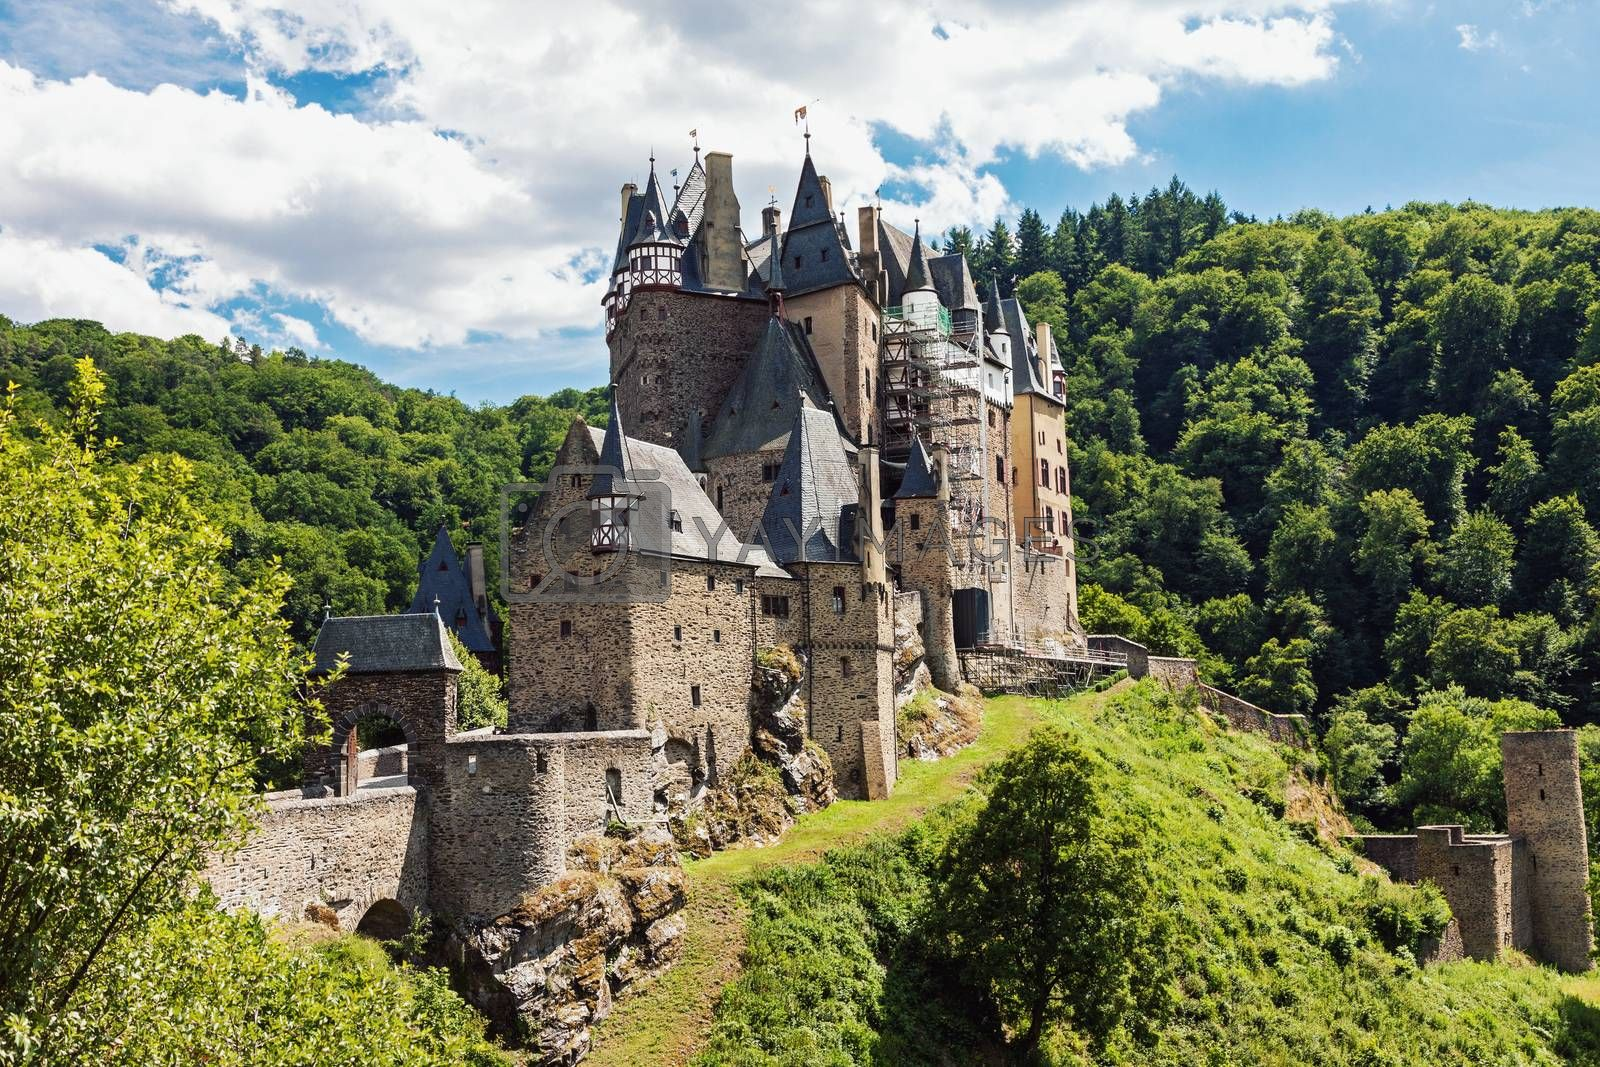 Medieval Eltz Castle in the hills above the Moselle River between Koblenz and Trier, Germany